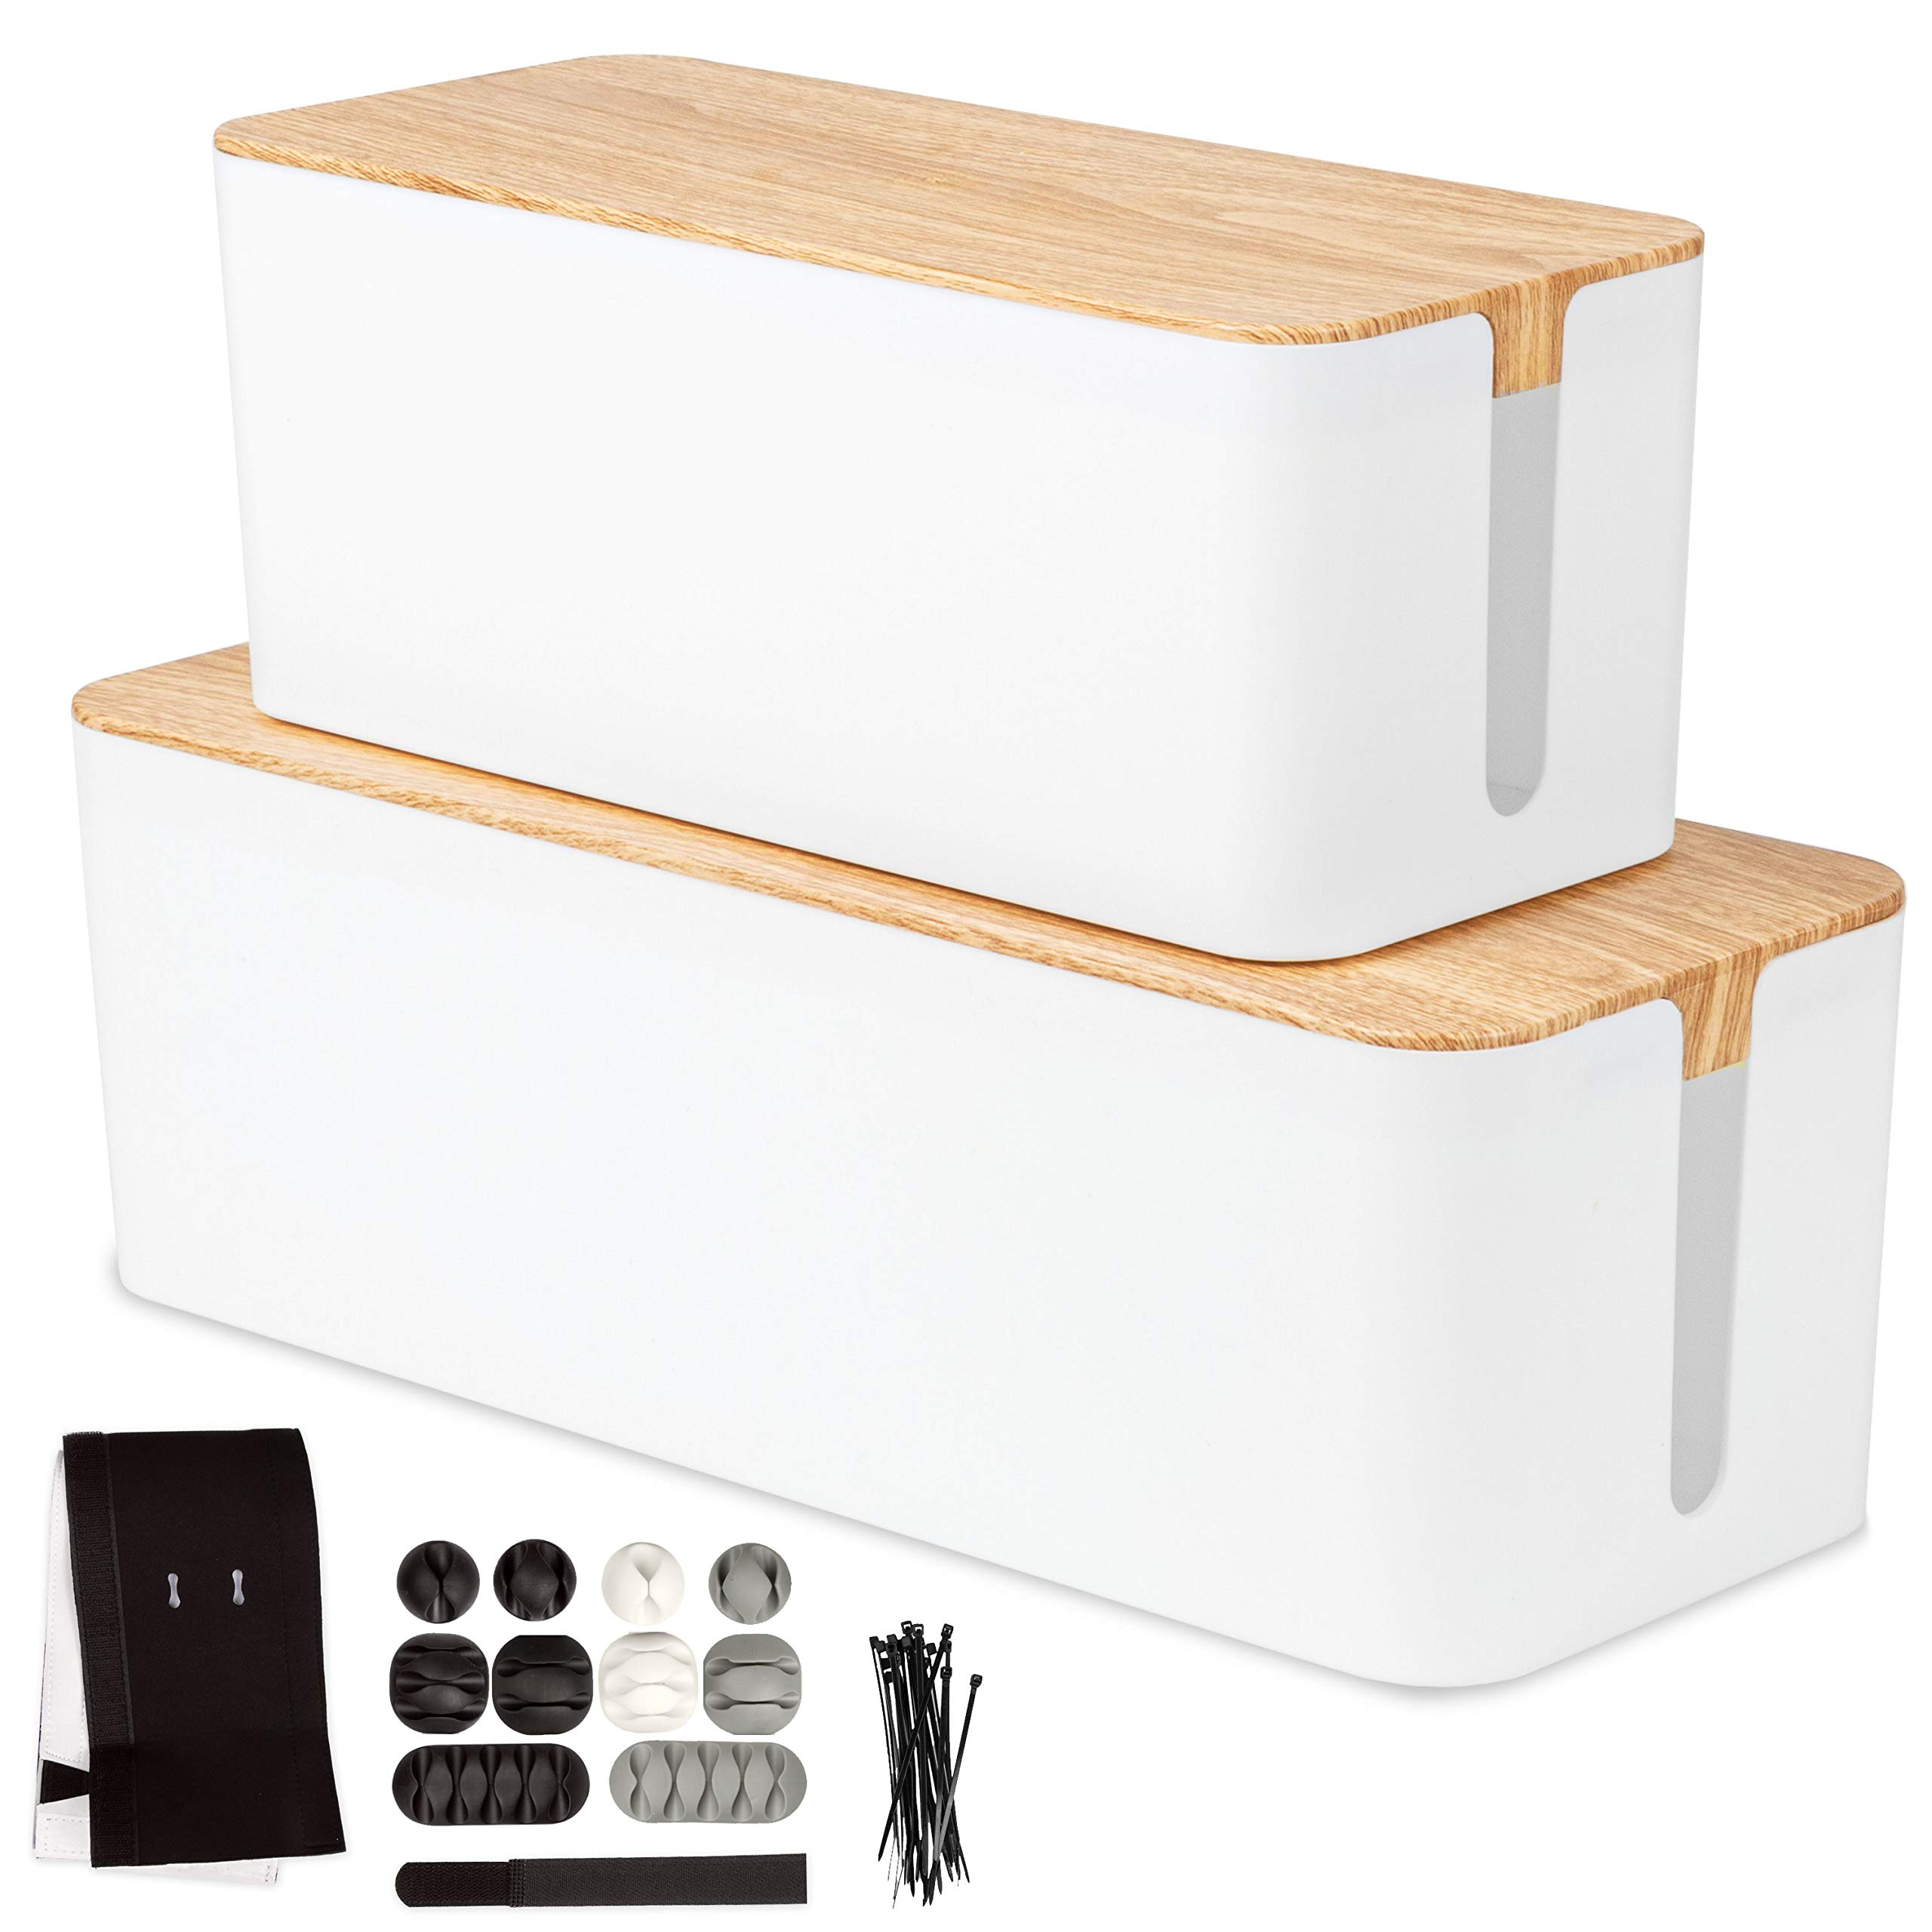 Cable Management Box, 2 Pack - White Cord Organizer with Wood Top - Hider for Wires, Power Strips, Surge Protectors & More - Includes Cable Sleeve, Hook and Loop Keepers, Zip Ties & Clips